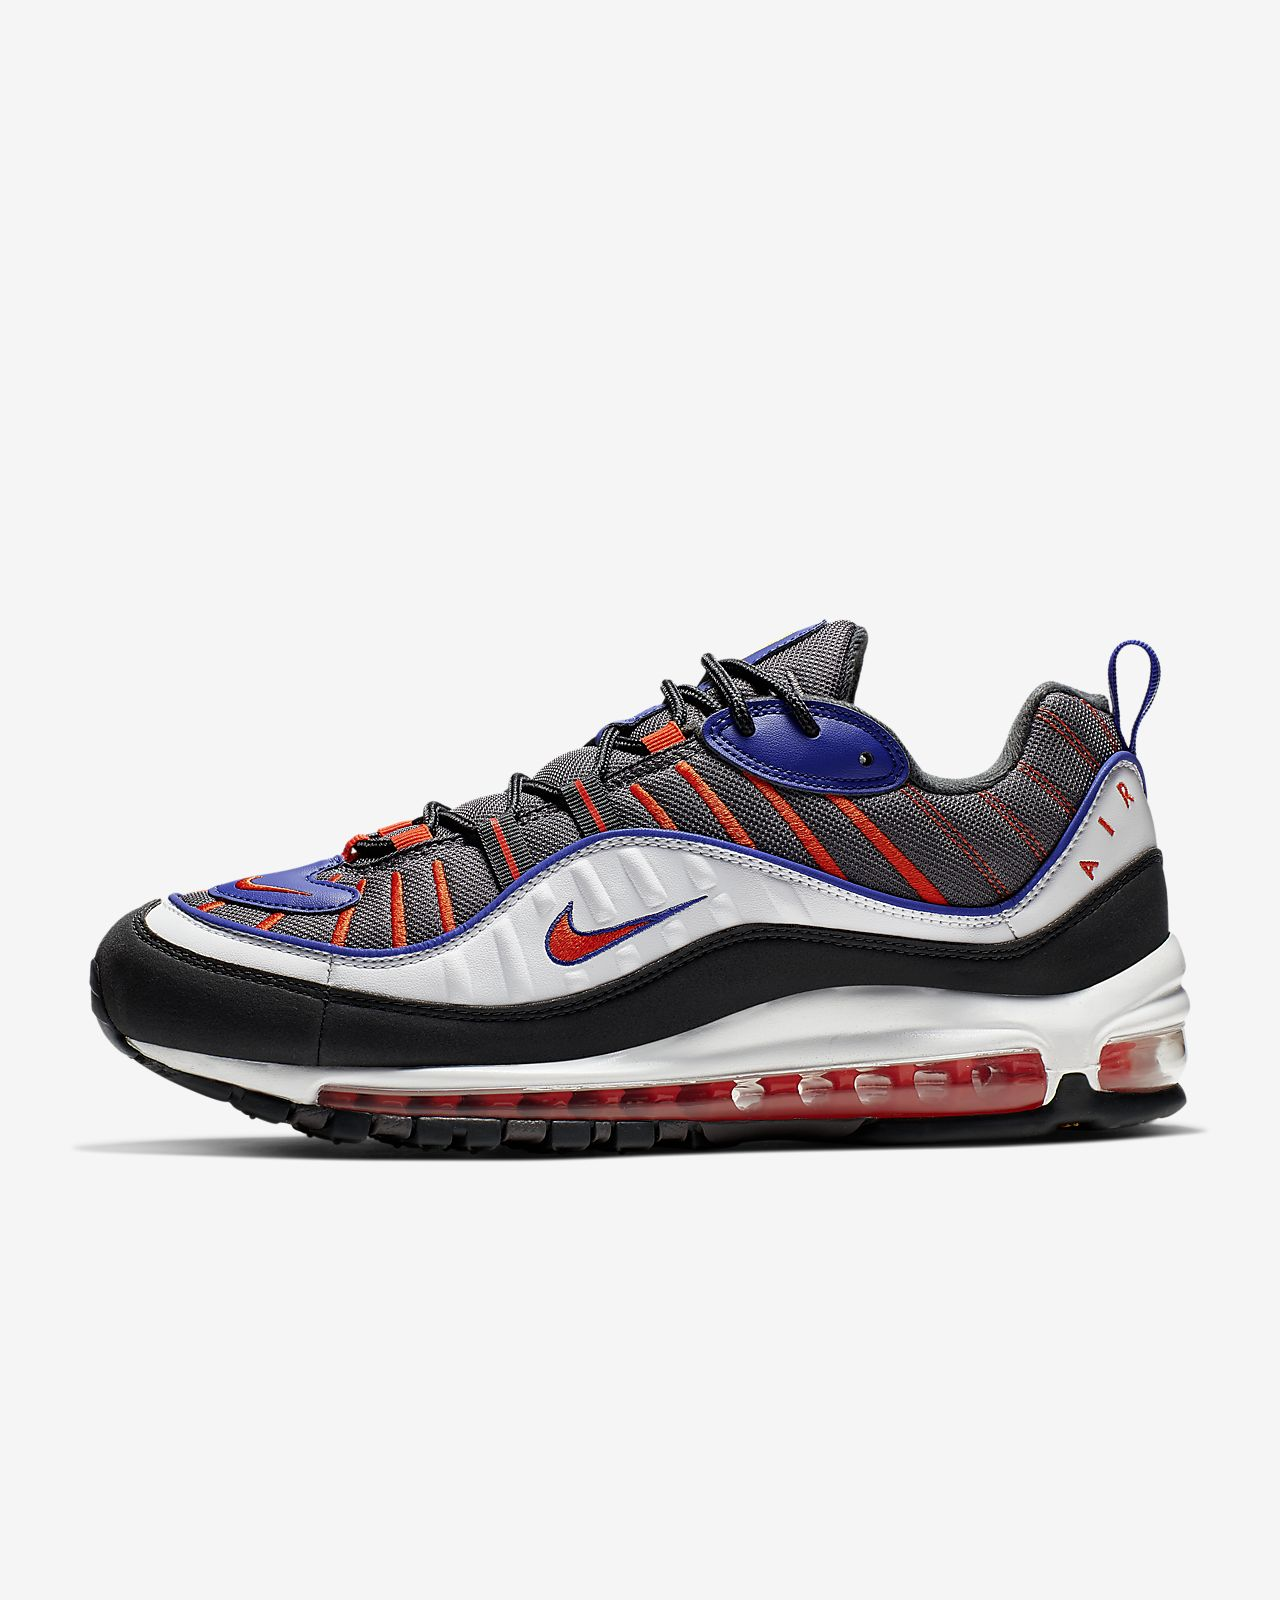 reputable site d3a99 99542 ... Chaussure Nike Air Max 98 pour Homme